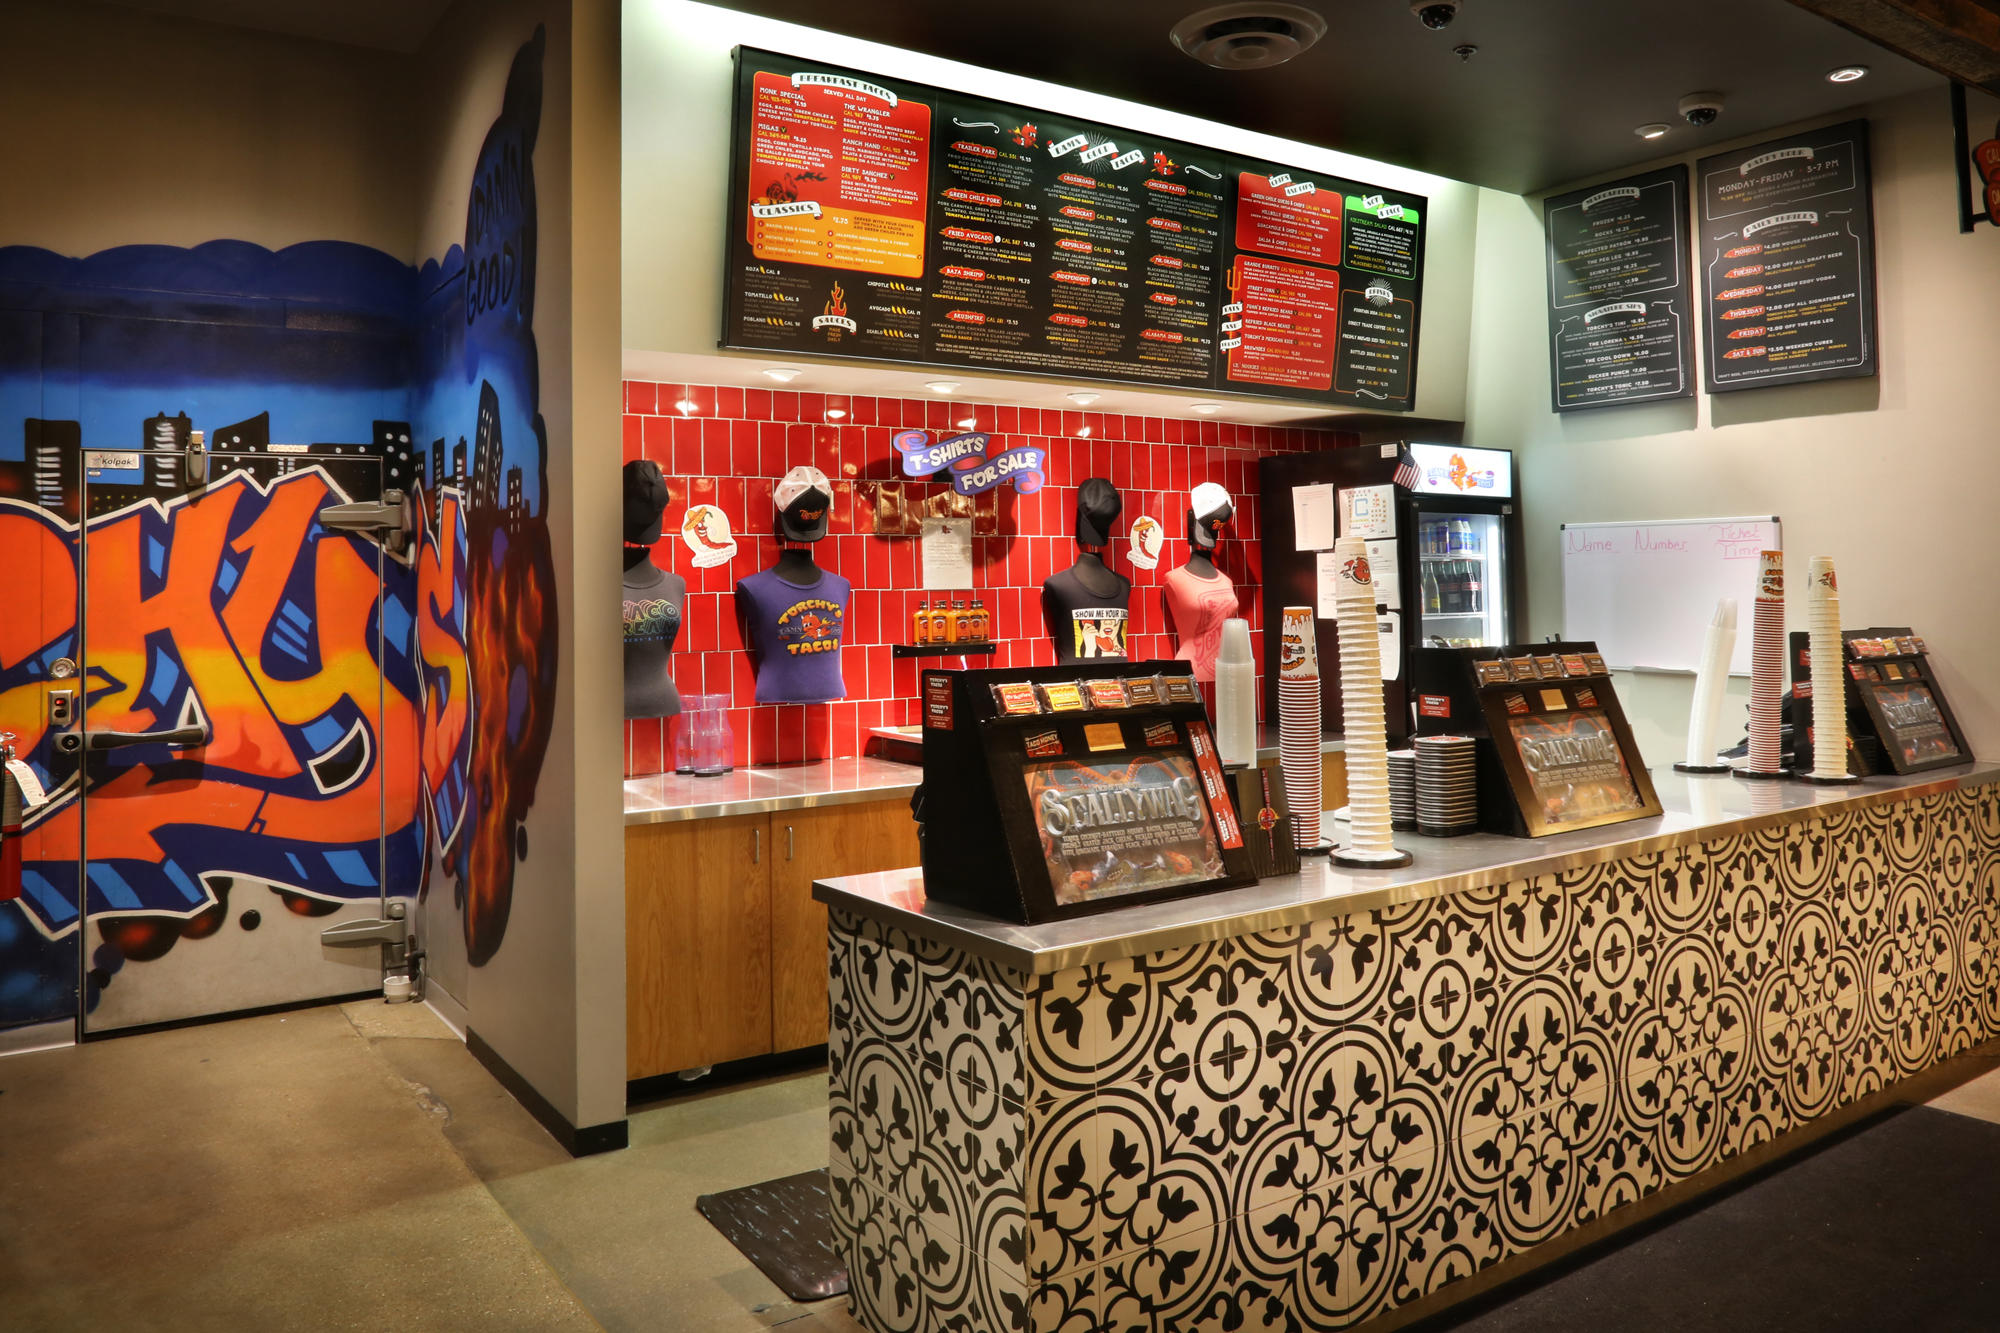 Torchy's Tacos image 9